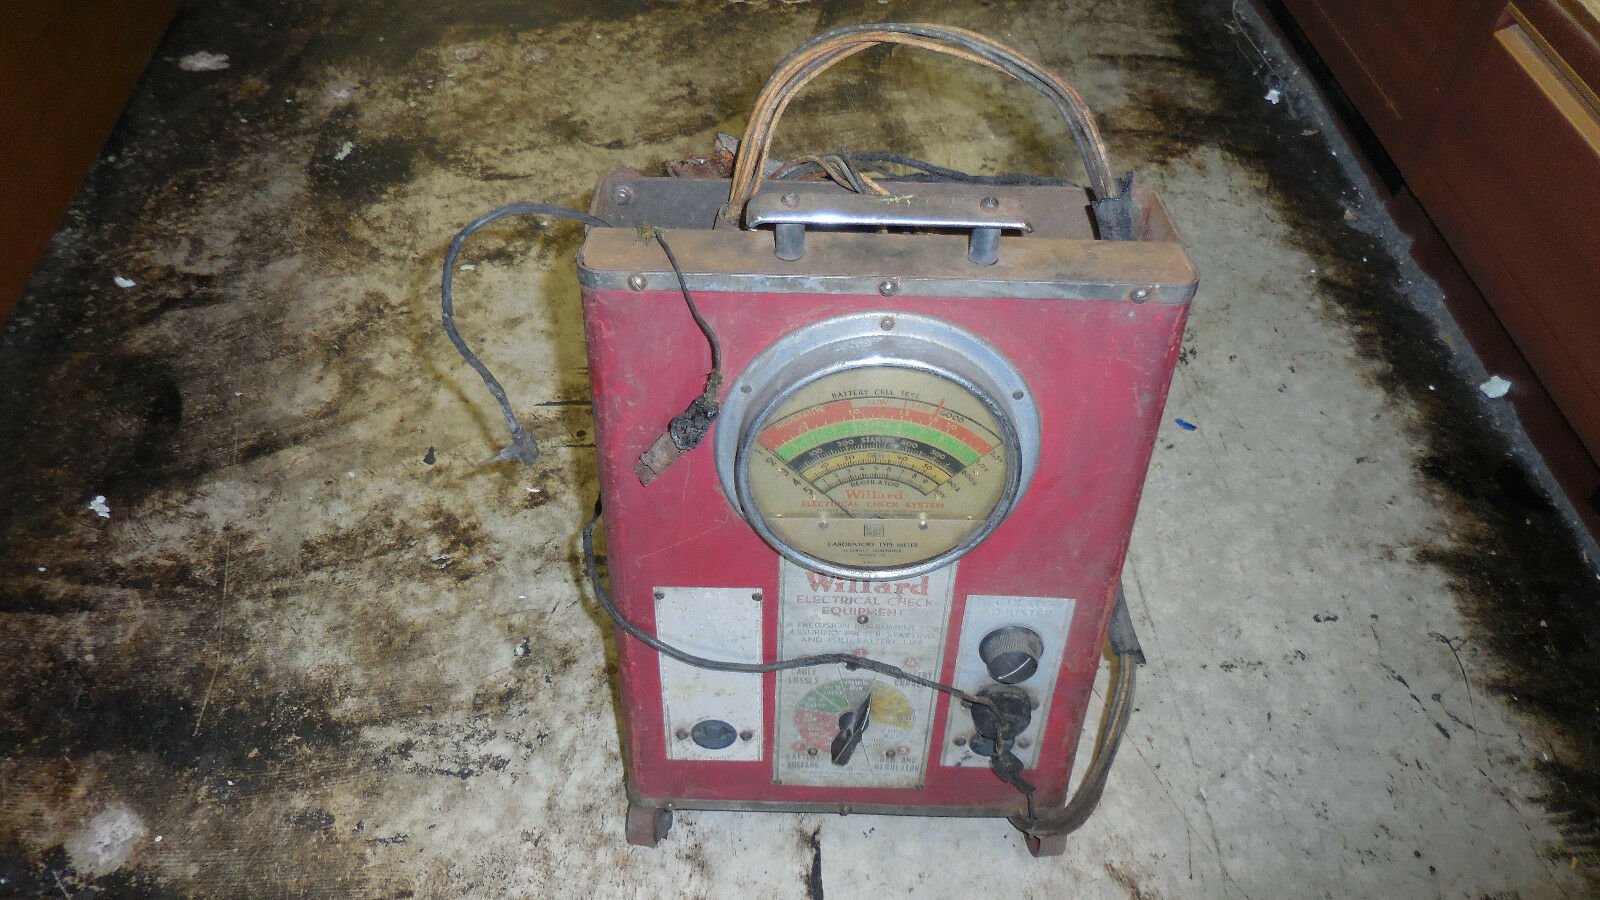 WILLARD ELECTRICAL CHECK EQUIPMENT MODEL WD-IA BATTERY TESTER-NOT WORKING